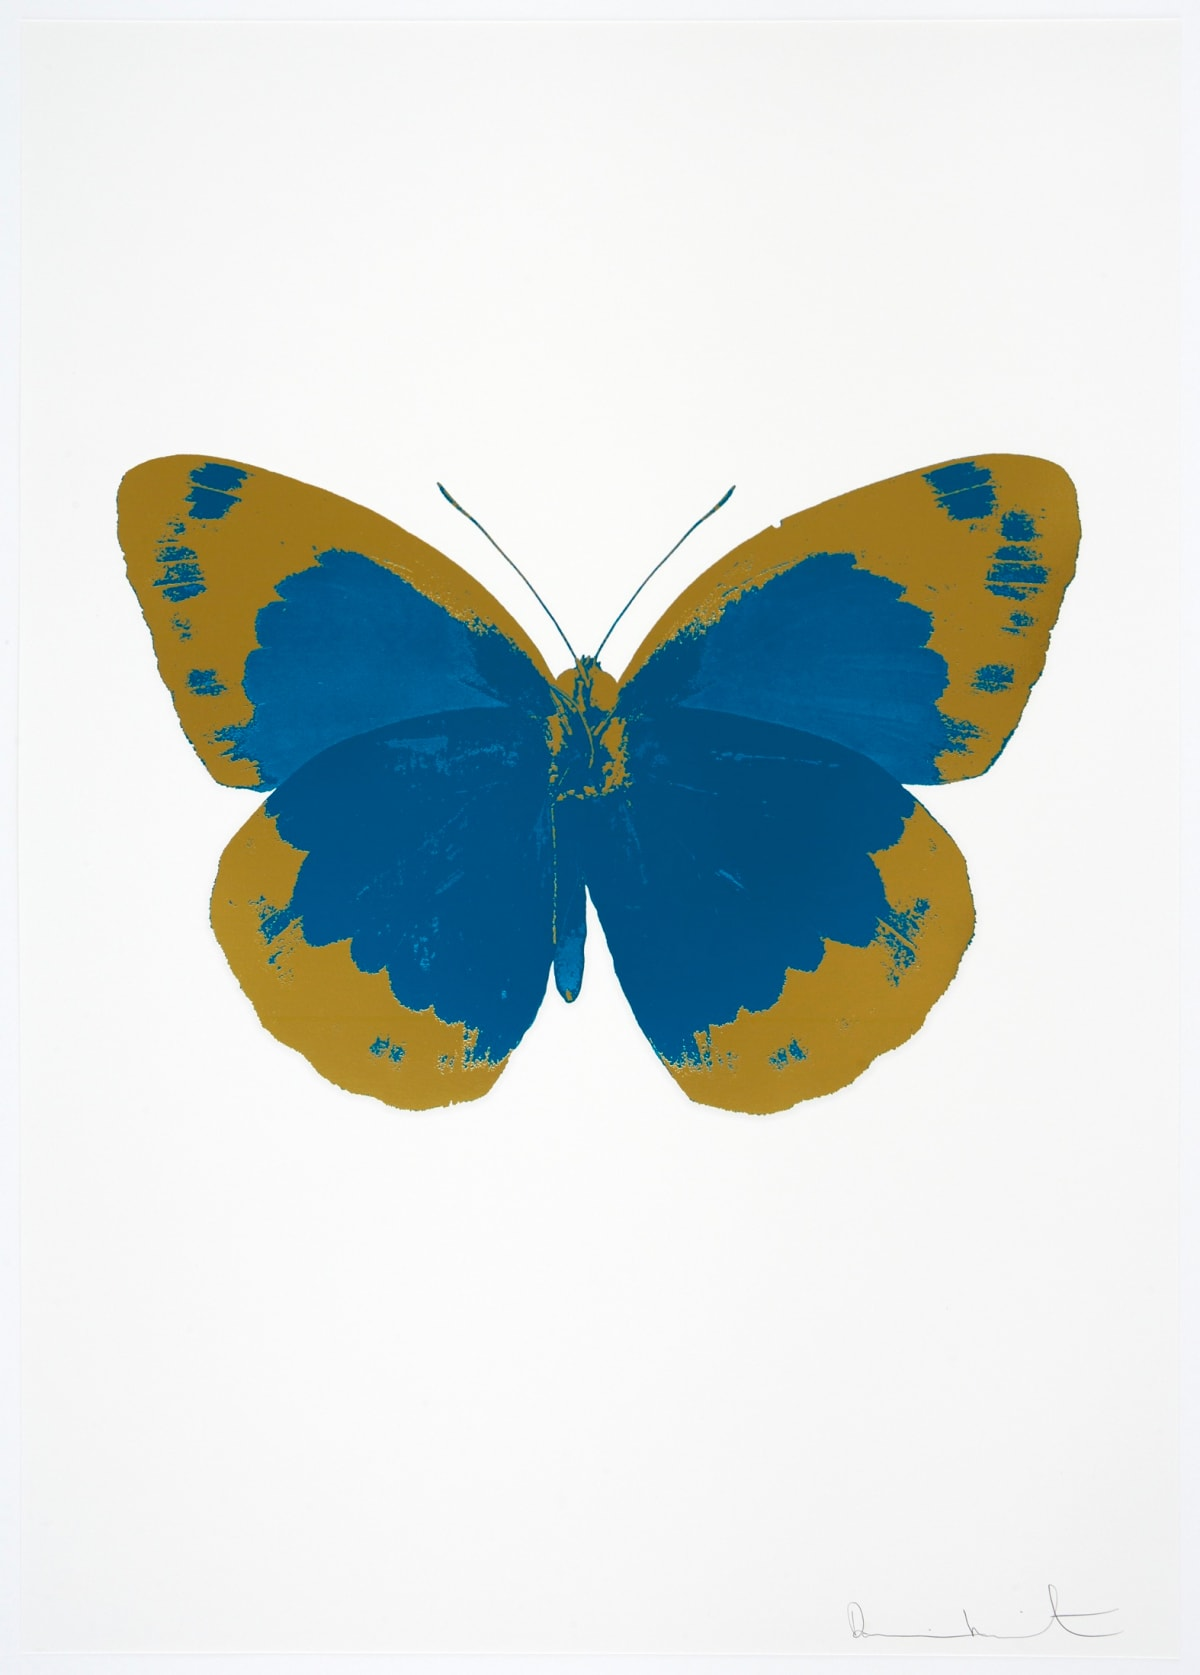 Damien Hirst The Souls II - Turquoise/Oriental Gold/Blind Impression, 2010 2 colour foil block on 300gsm Arches 88 archival paper. Signed and numbered. Published by Paul Stolper and Other Criteria 72 x 51cm OC7822 / 658-5 Edition of 15